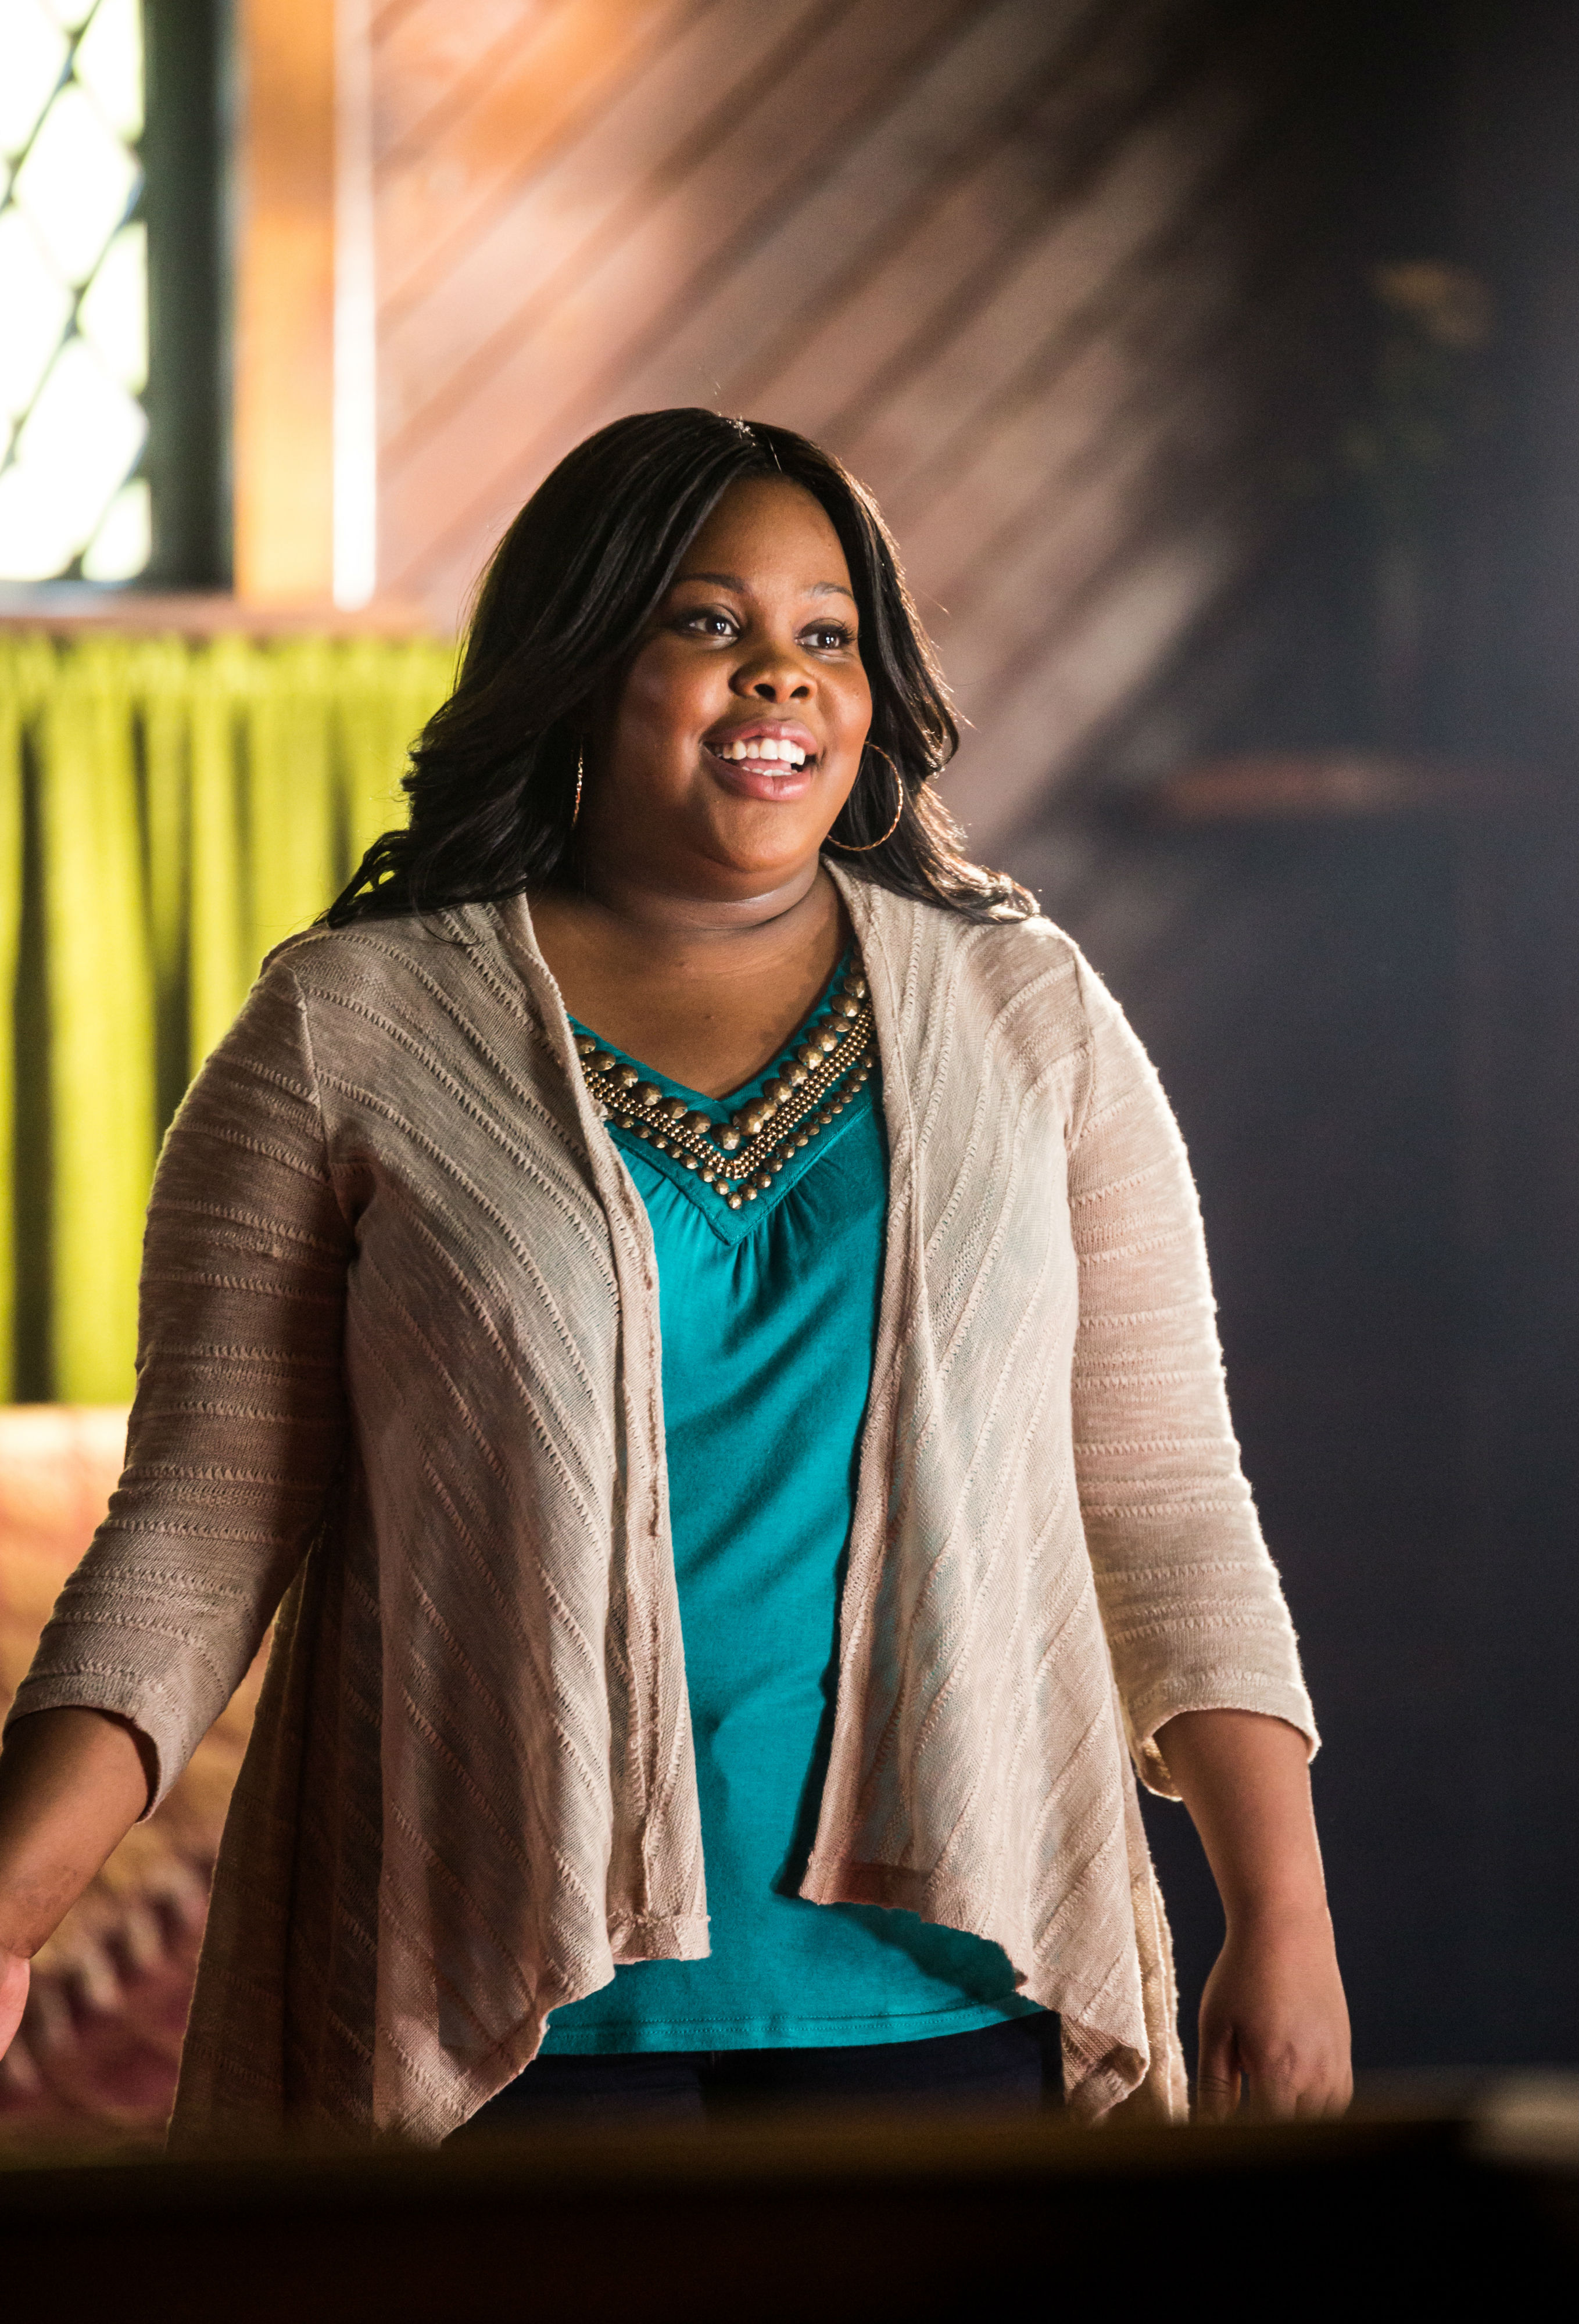 My One Christmas Wish.Up S My One Christmas Wish Starring Amber Riley Airs Nov